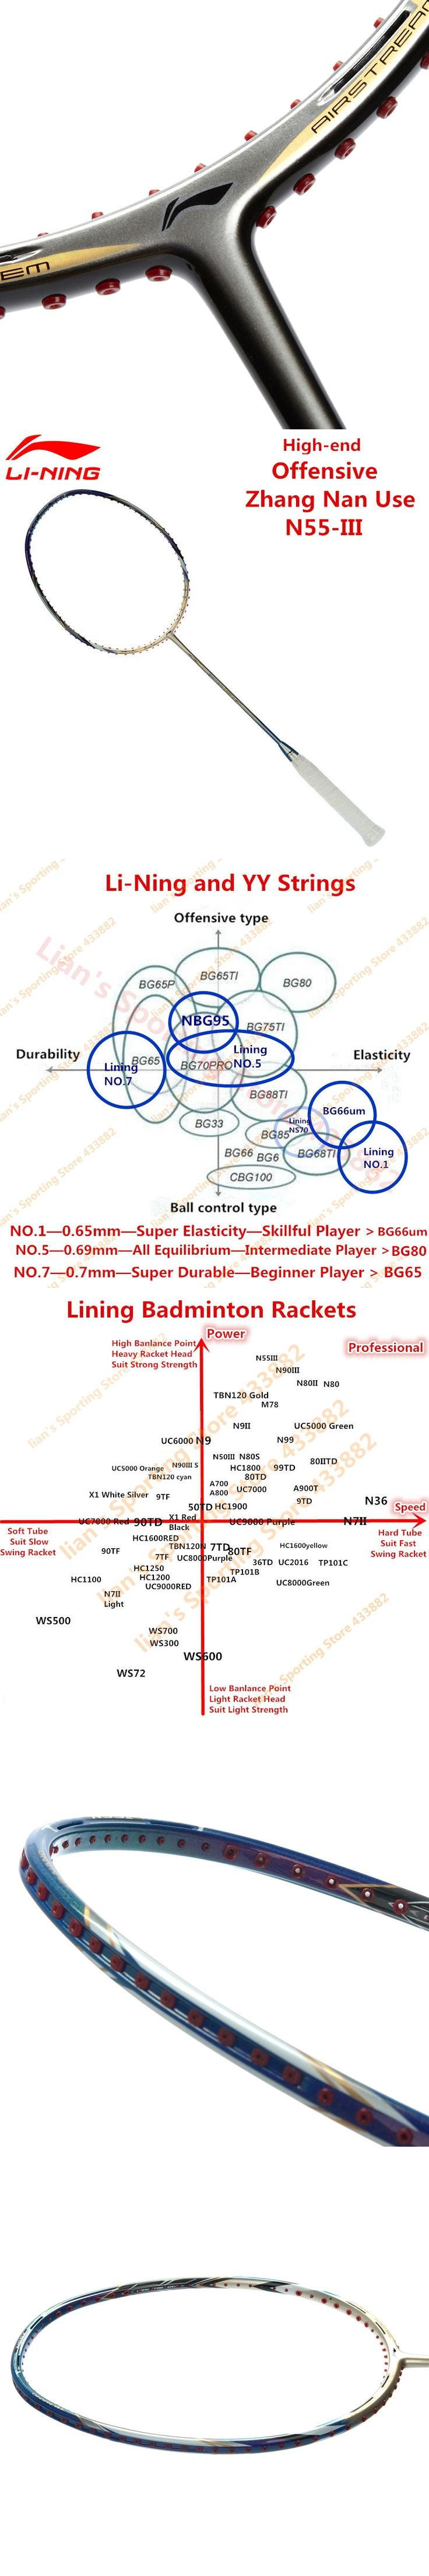 Lining High-end Badminton Racket MP N55III Professional Offensive Type Carbon Li-Ning Racquet AYPH148/AYPH162 with Free Overgrip